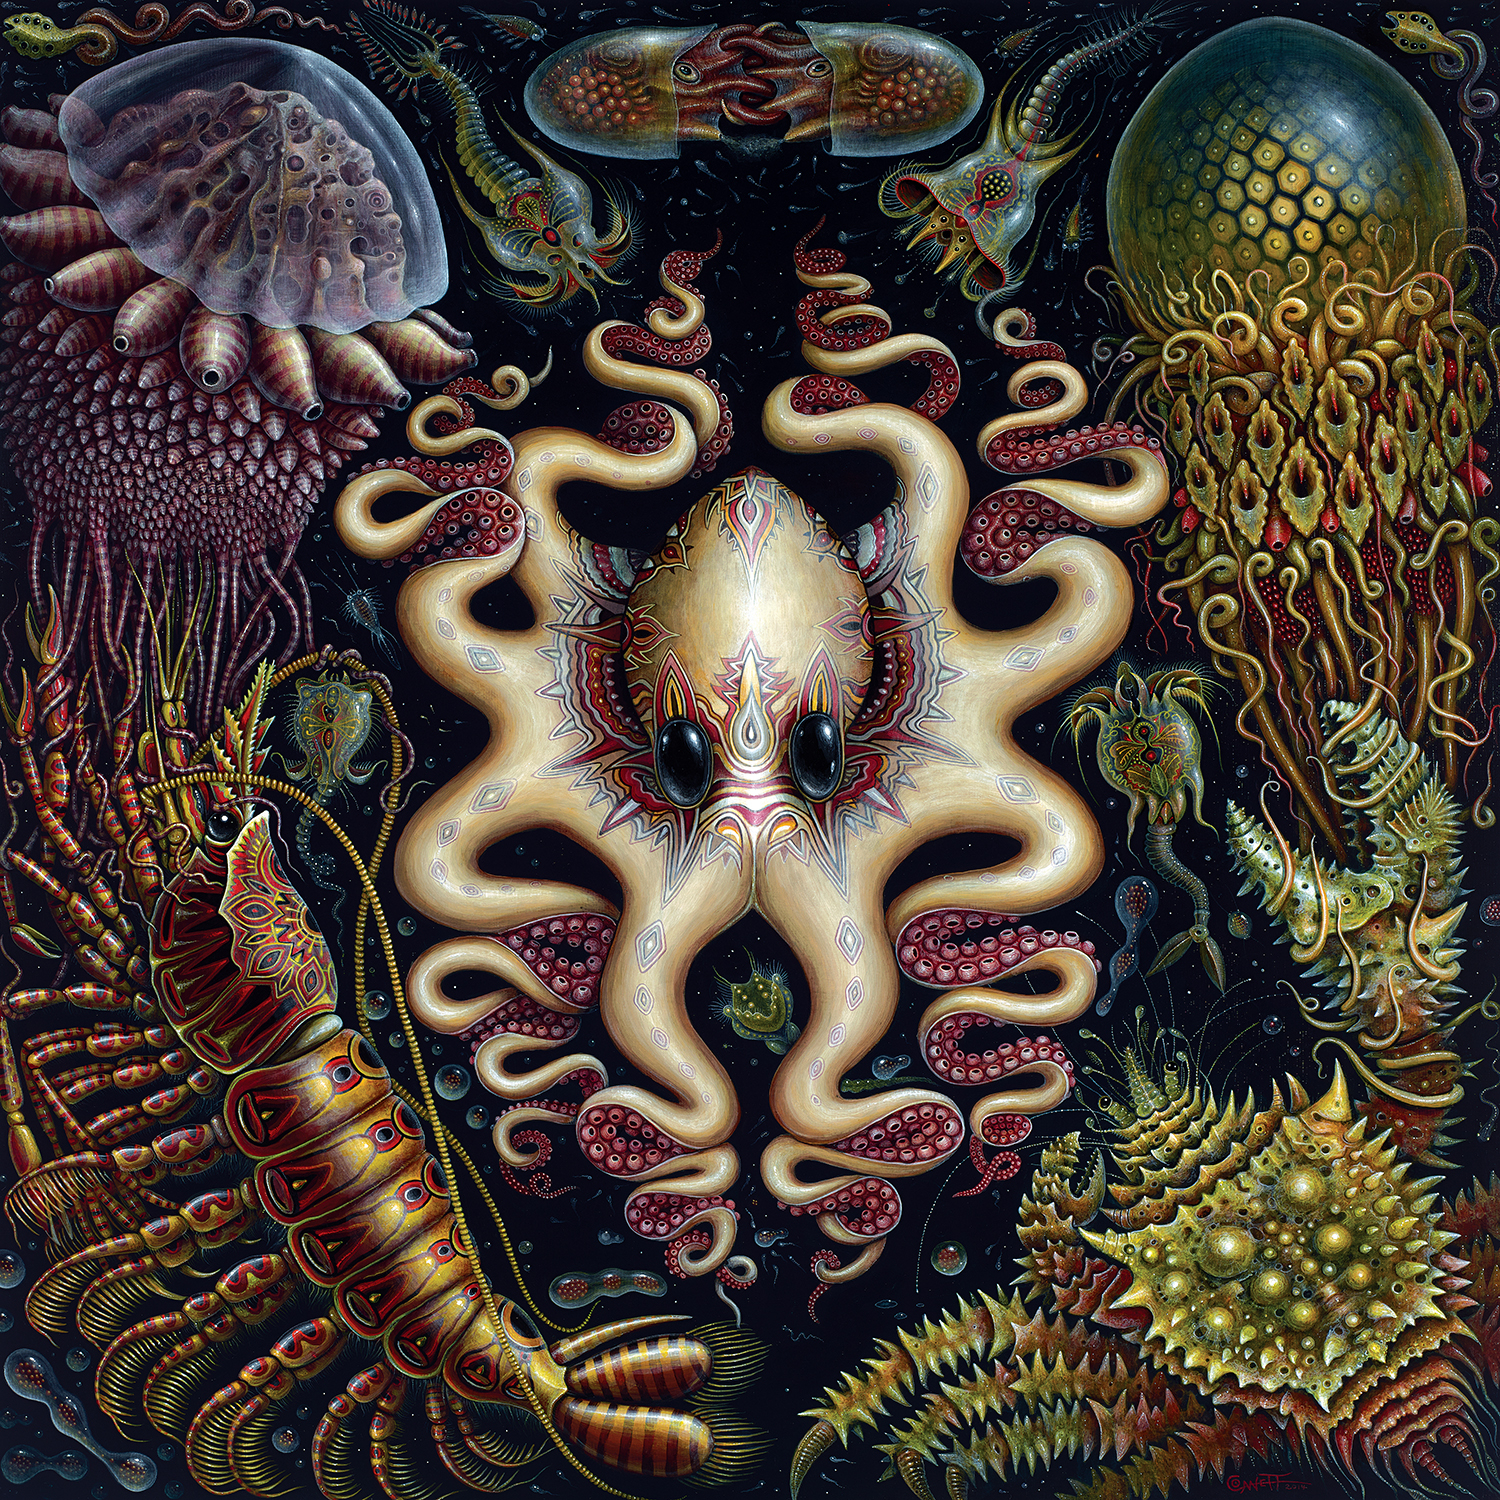 Octopus with large black eyes surrounded by underwater beings